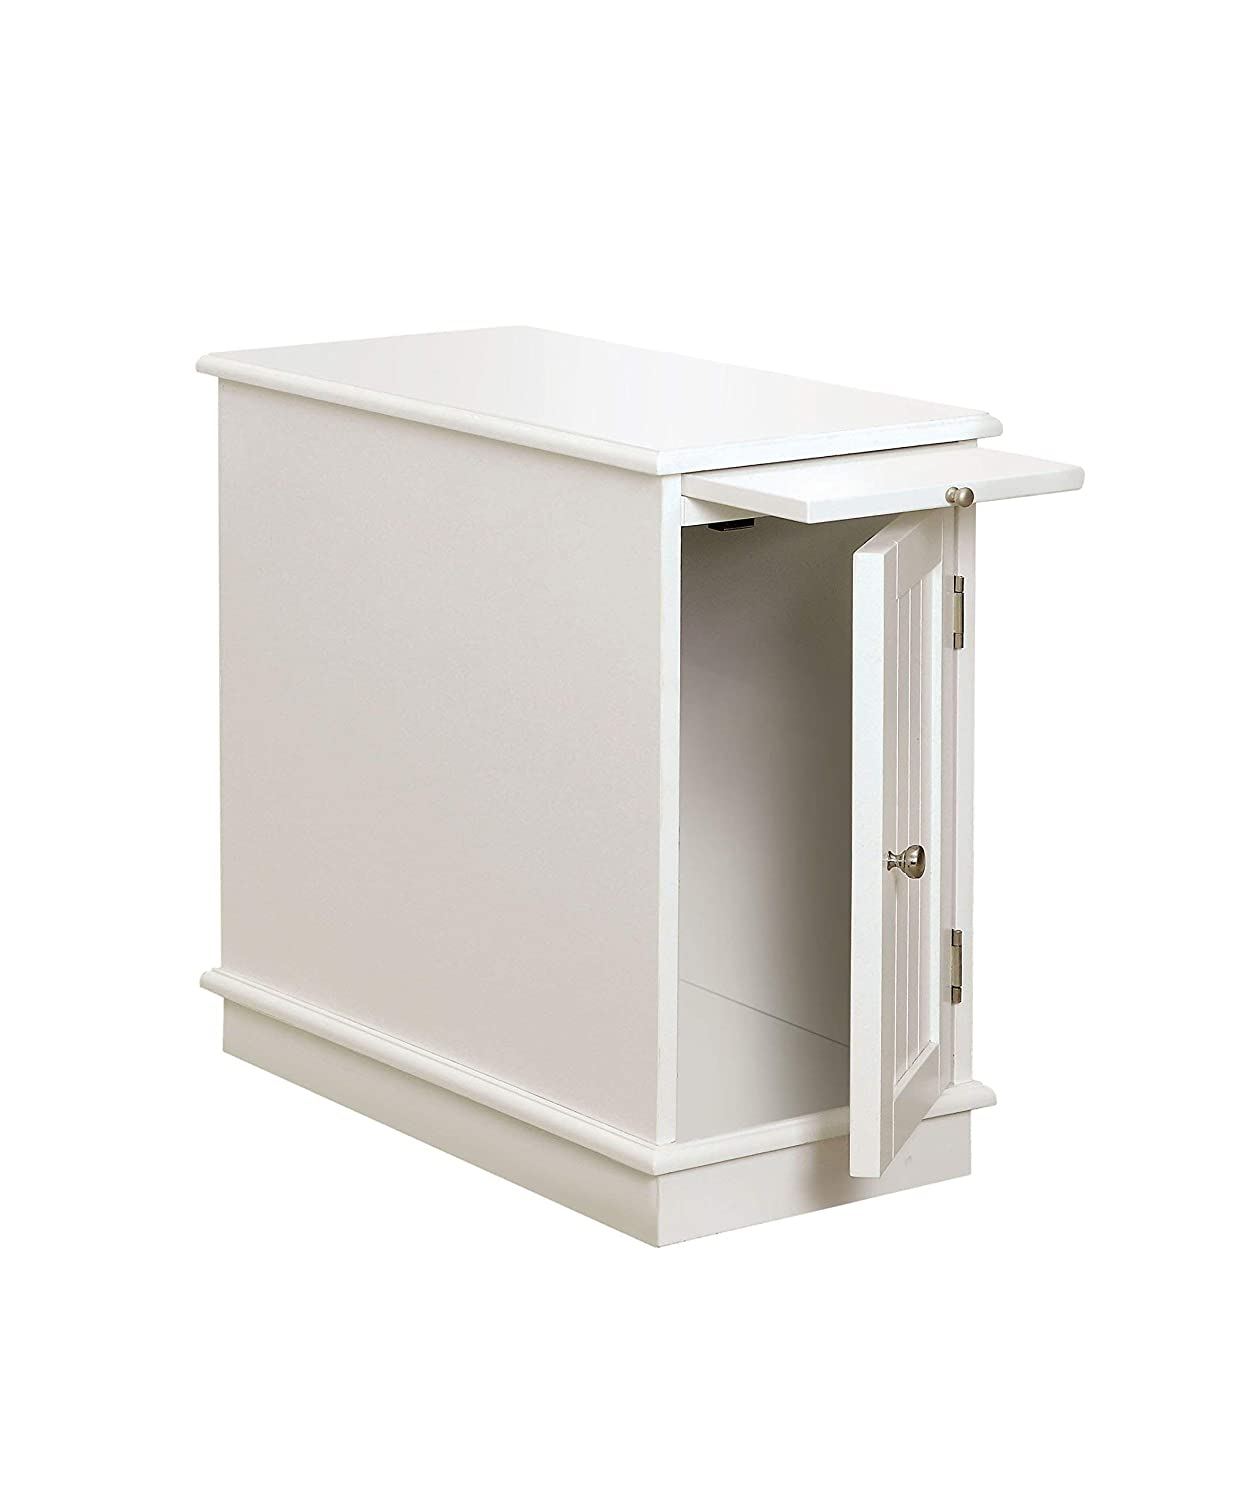 Furniture of America Asters Accent Side Cabinet, White